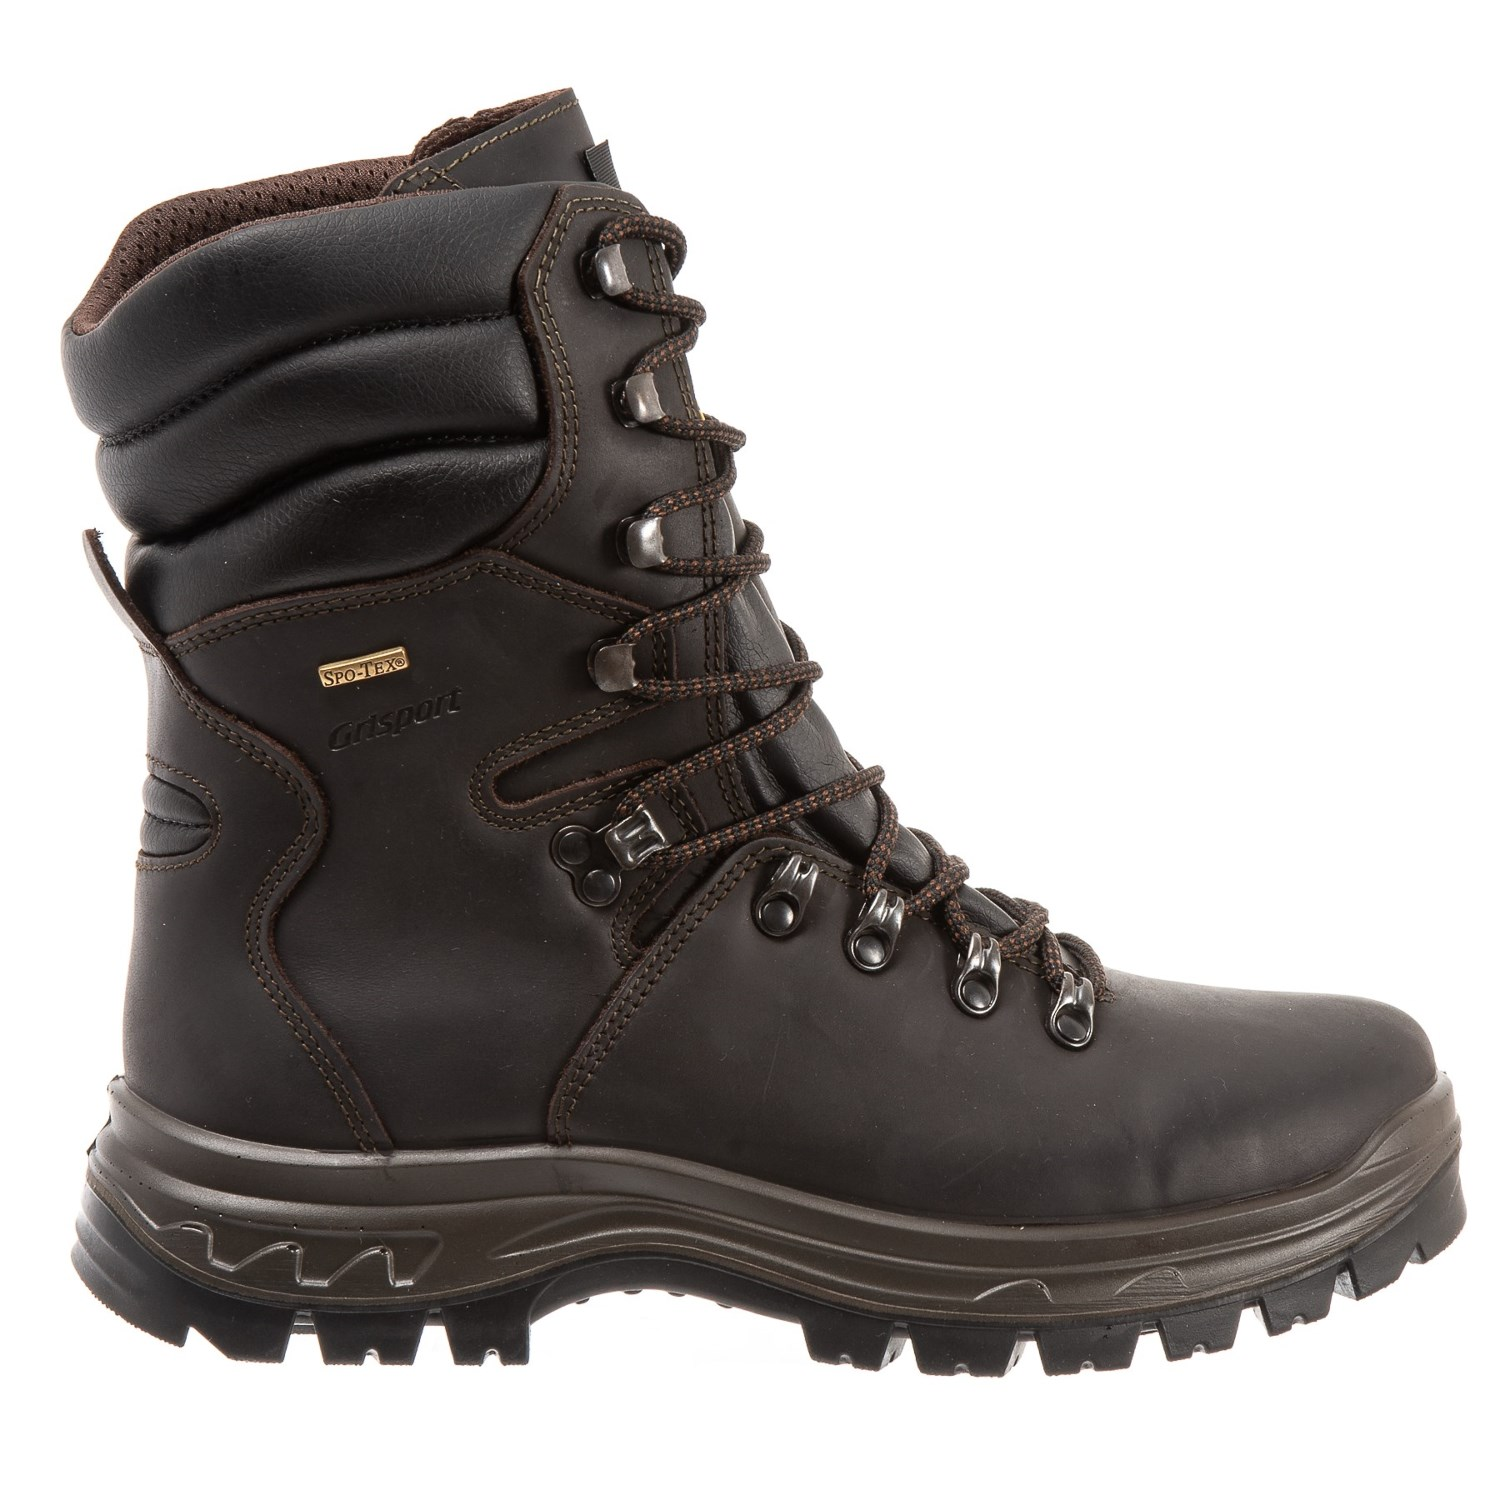 Grisport Made in Italy Alpine Hunting Boots - Waterproof (For Men) 2118782b0